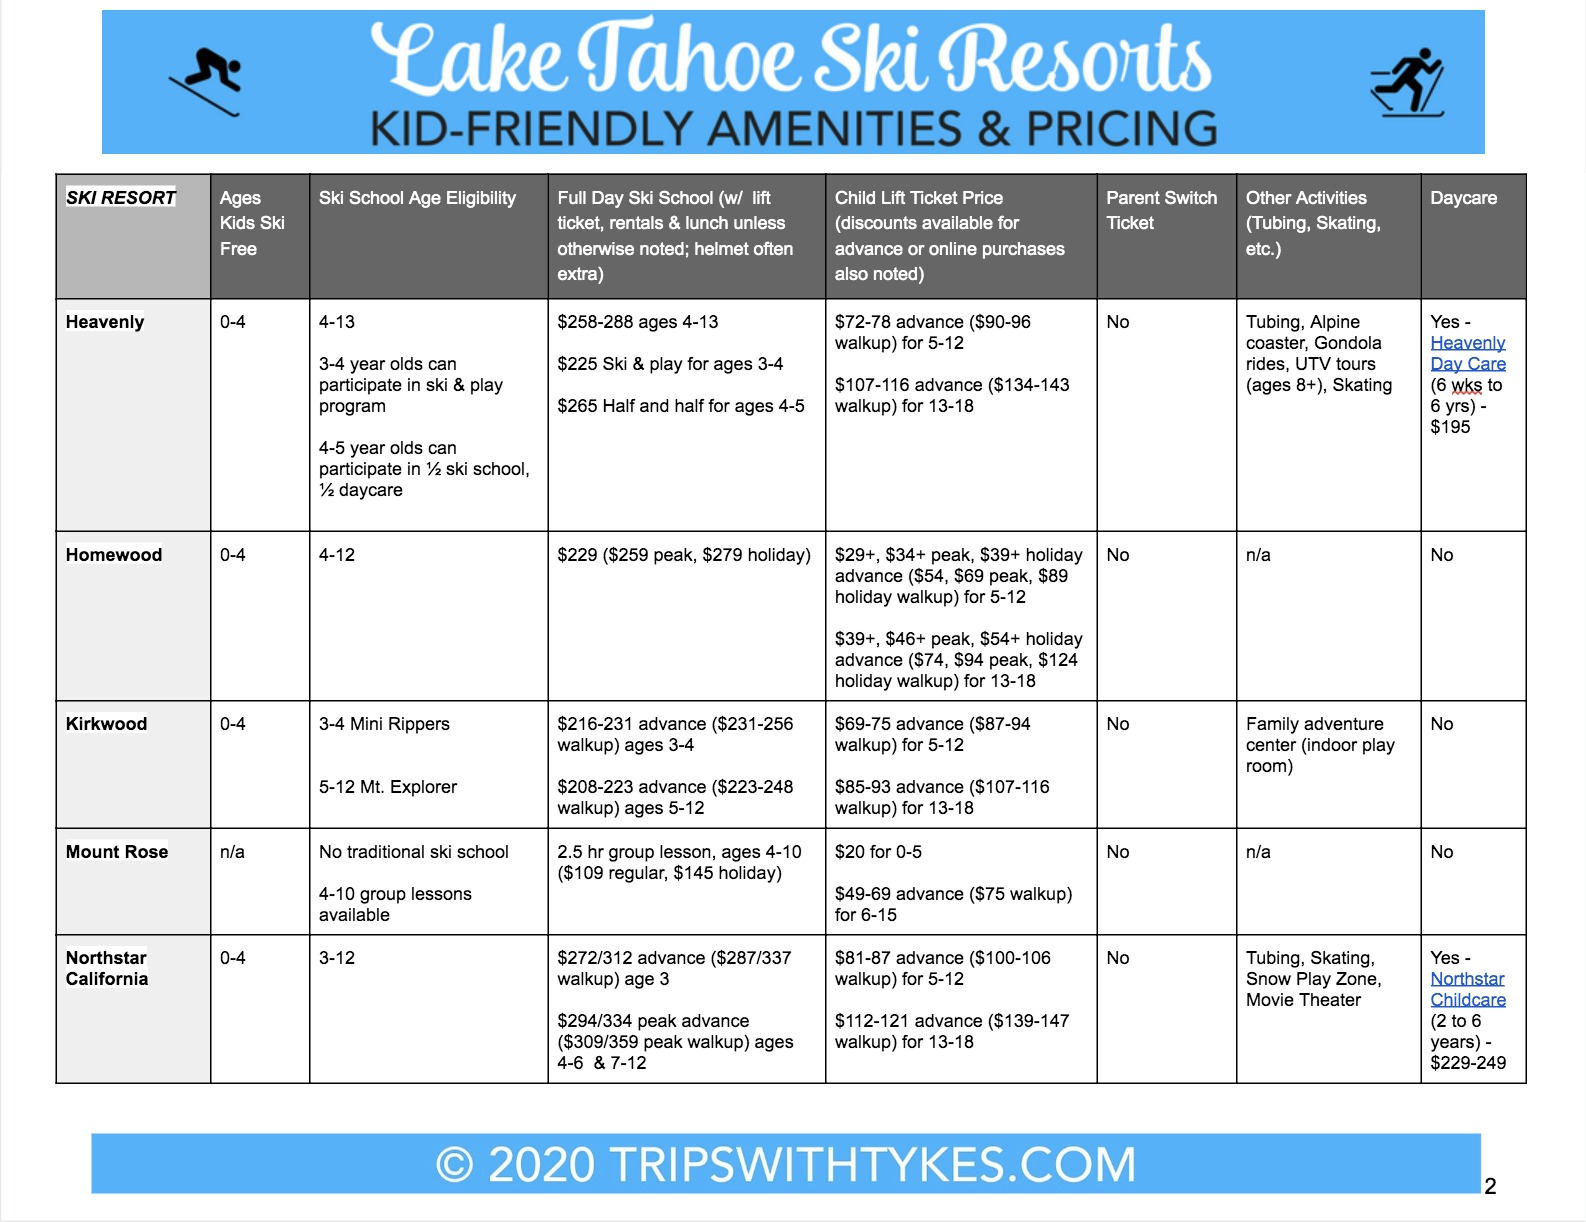 Lake Tahoe Ski Resort Comparison Guide 2020 Page 2